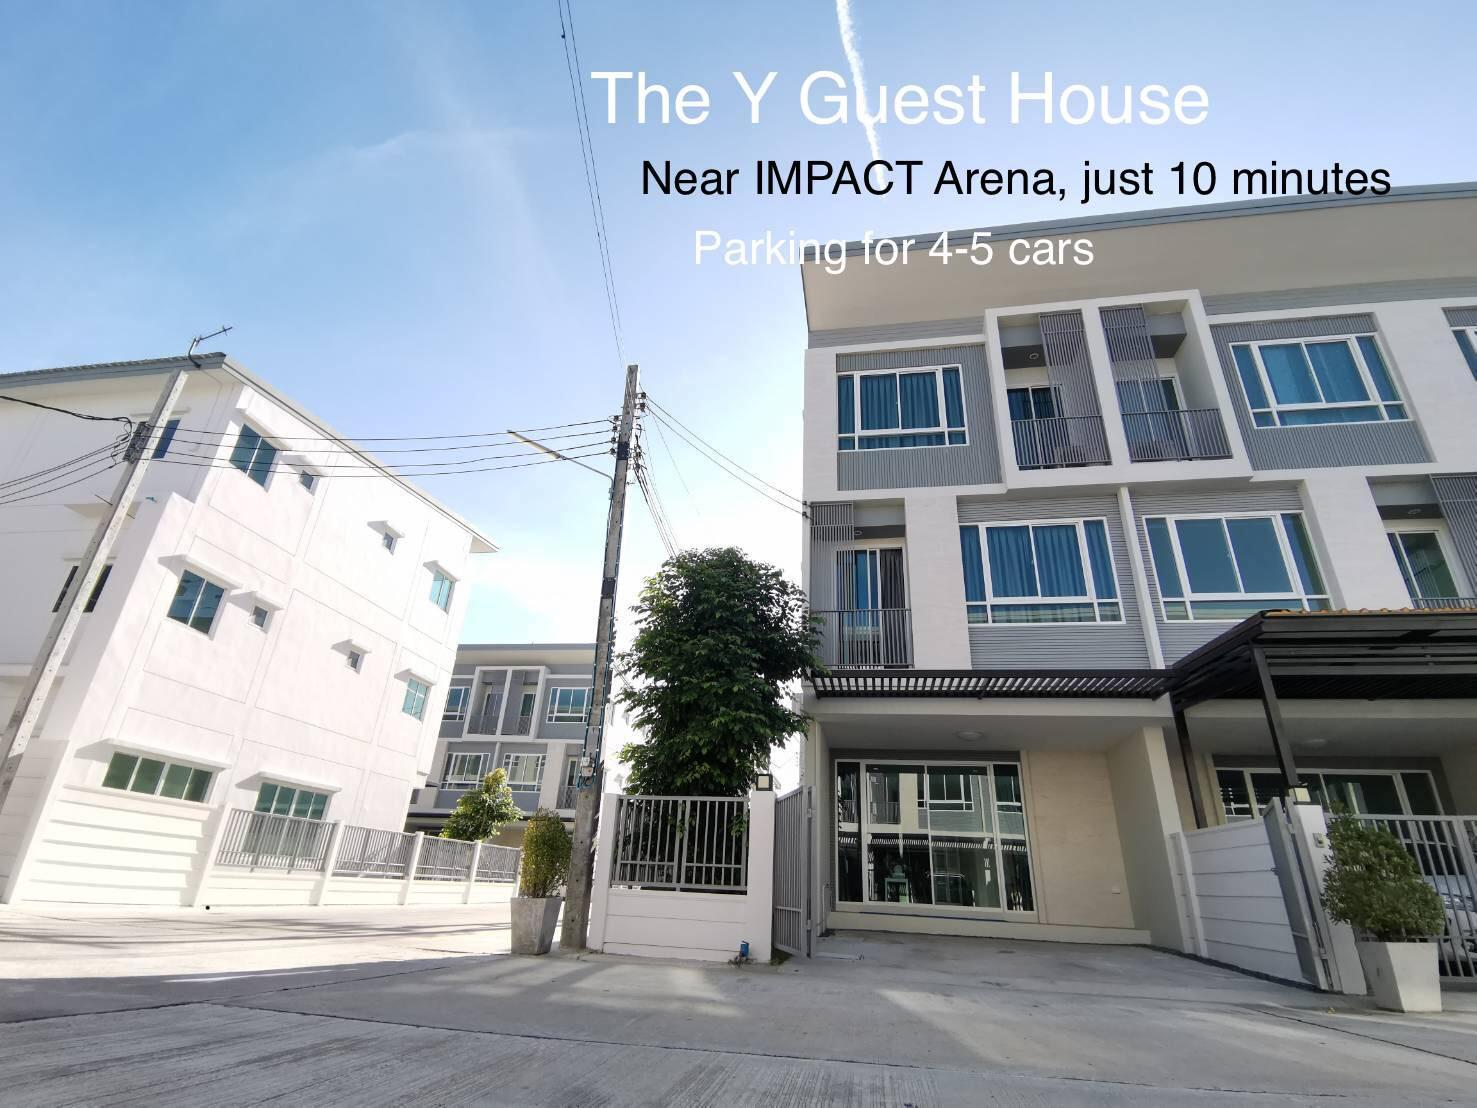 The Y Guest House IMPACT Arena